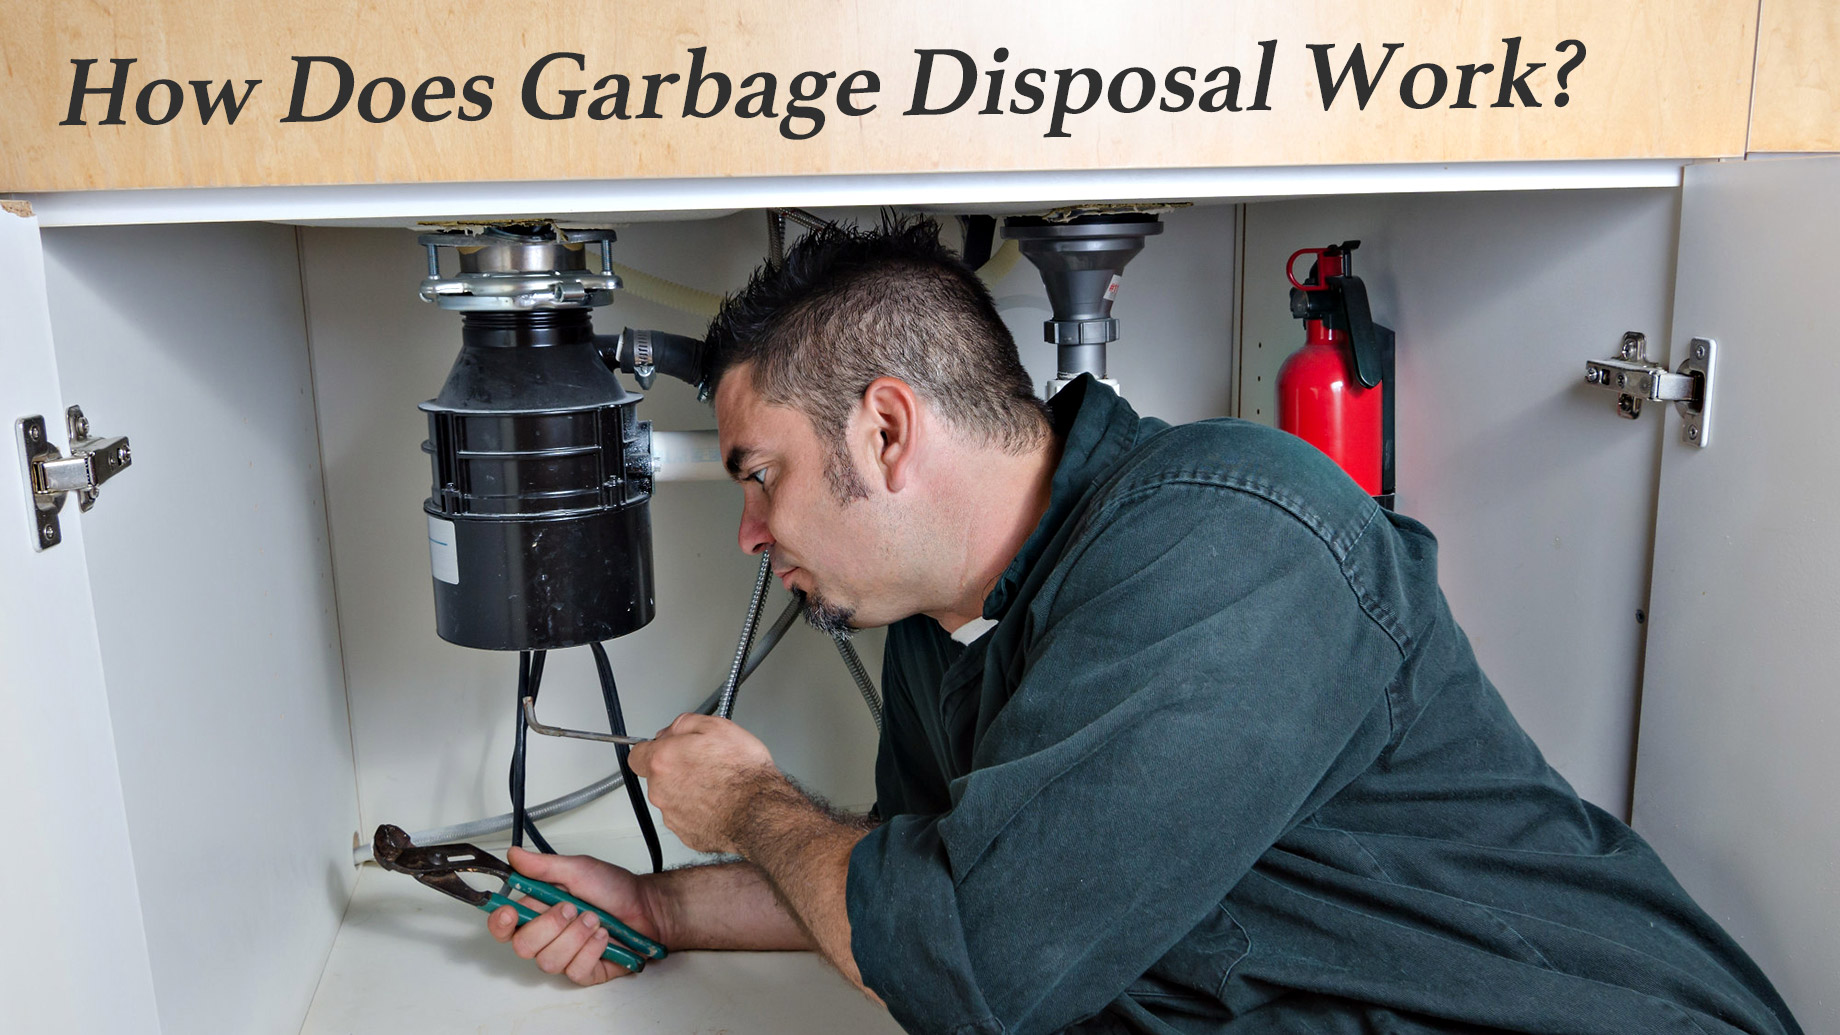 How Does Garbage Disposal Work?